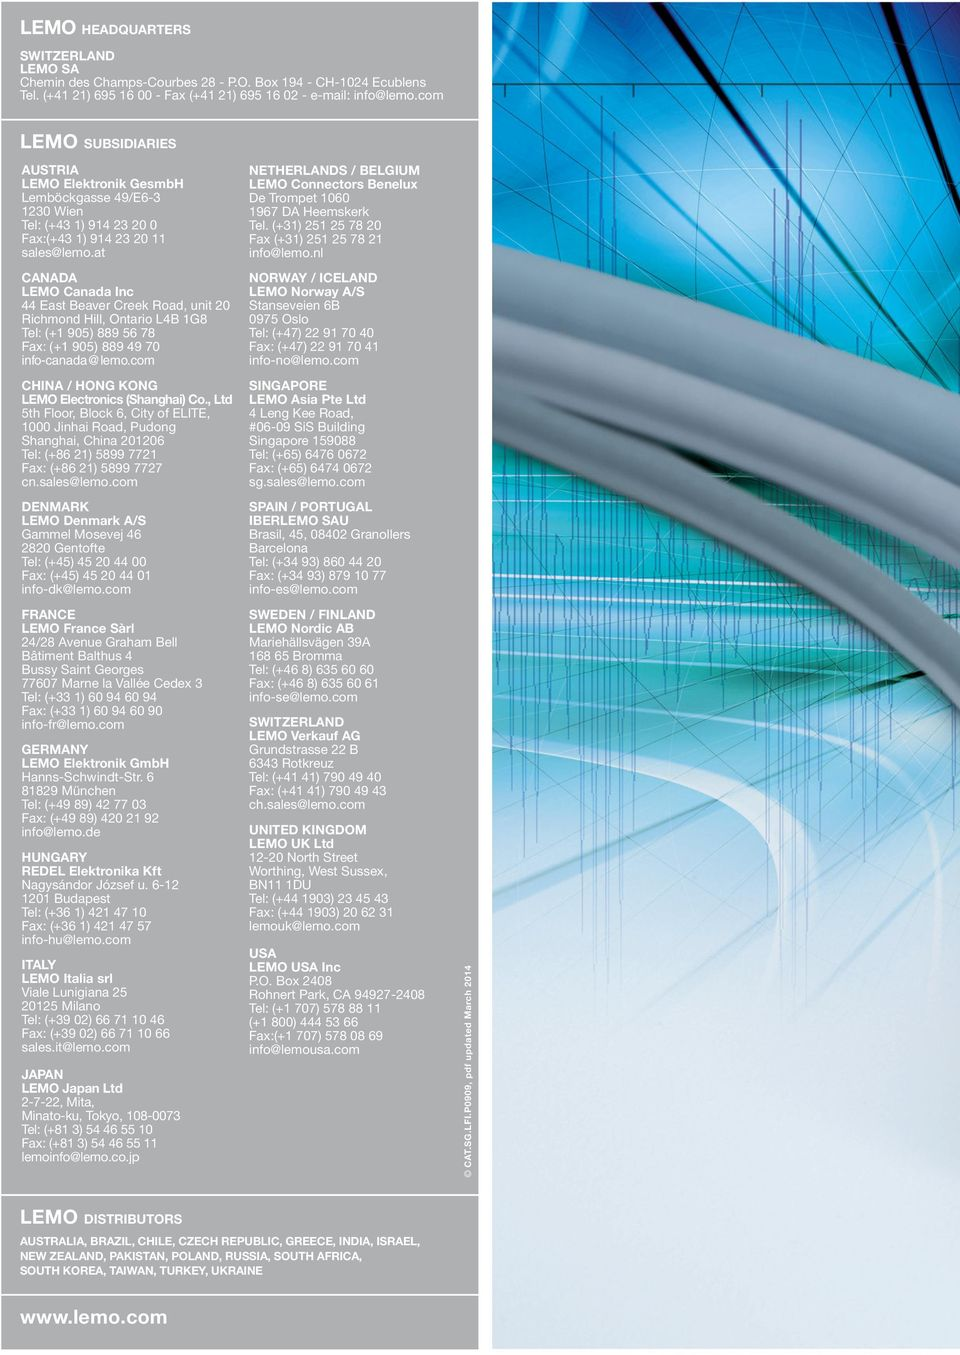 at CANADA LEMO Canada Inc 44 East Beaver Creek Road, unit 20 Richmond Hill, Ontario L4B 1G8 Tel: (+1 905) 889 56 78 Fax: (+1 905) 889 49 70 info-canada@lemo.